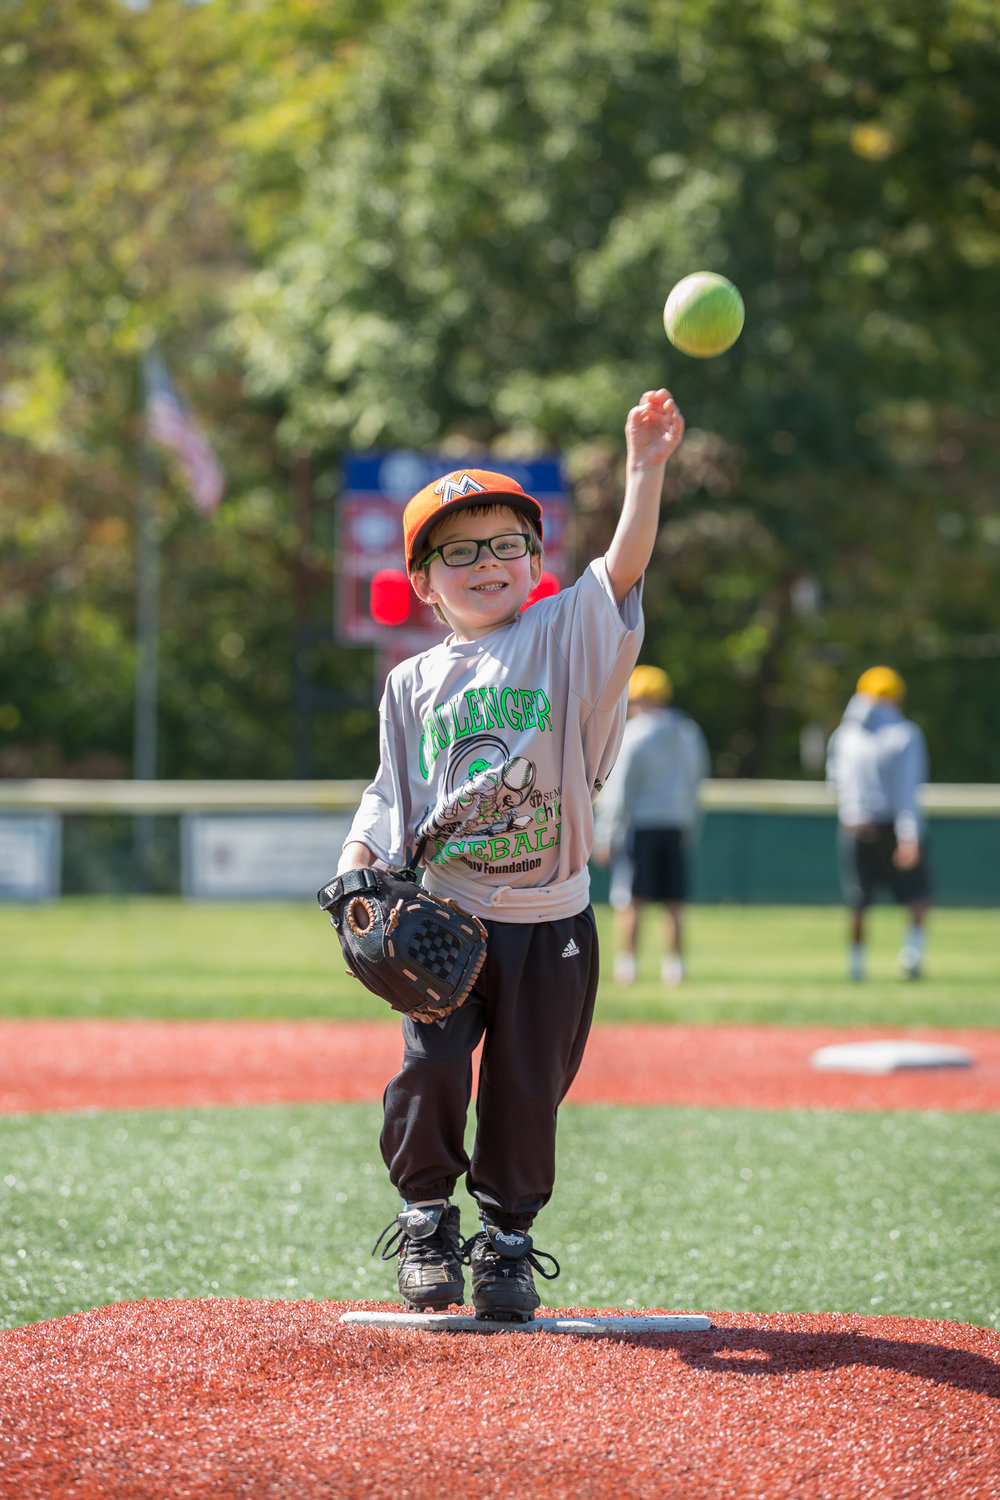 Challenger League Mattingly Charities 15 10-9-16.jpg